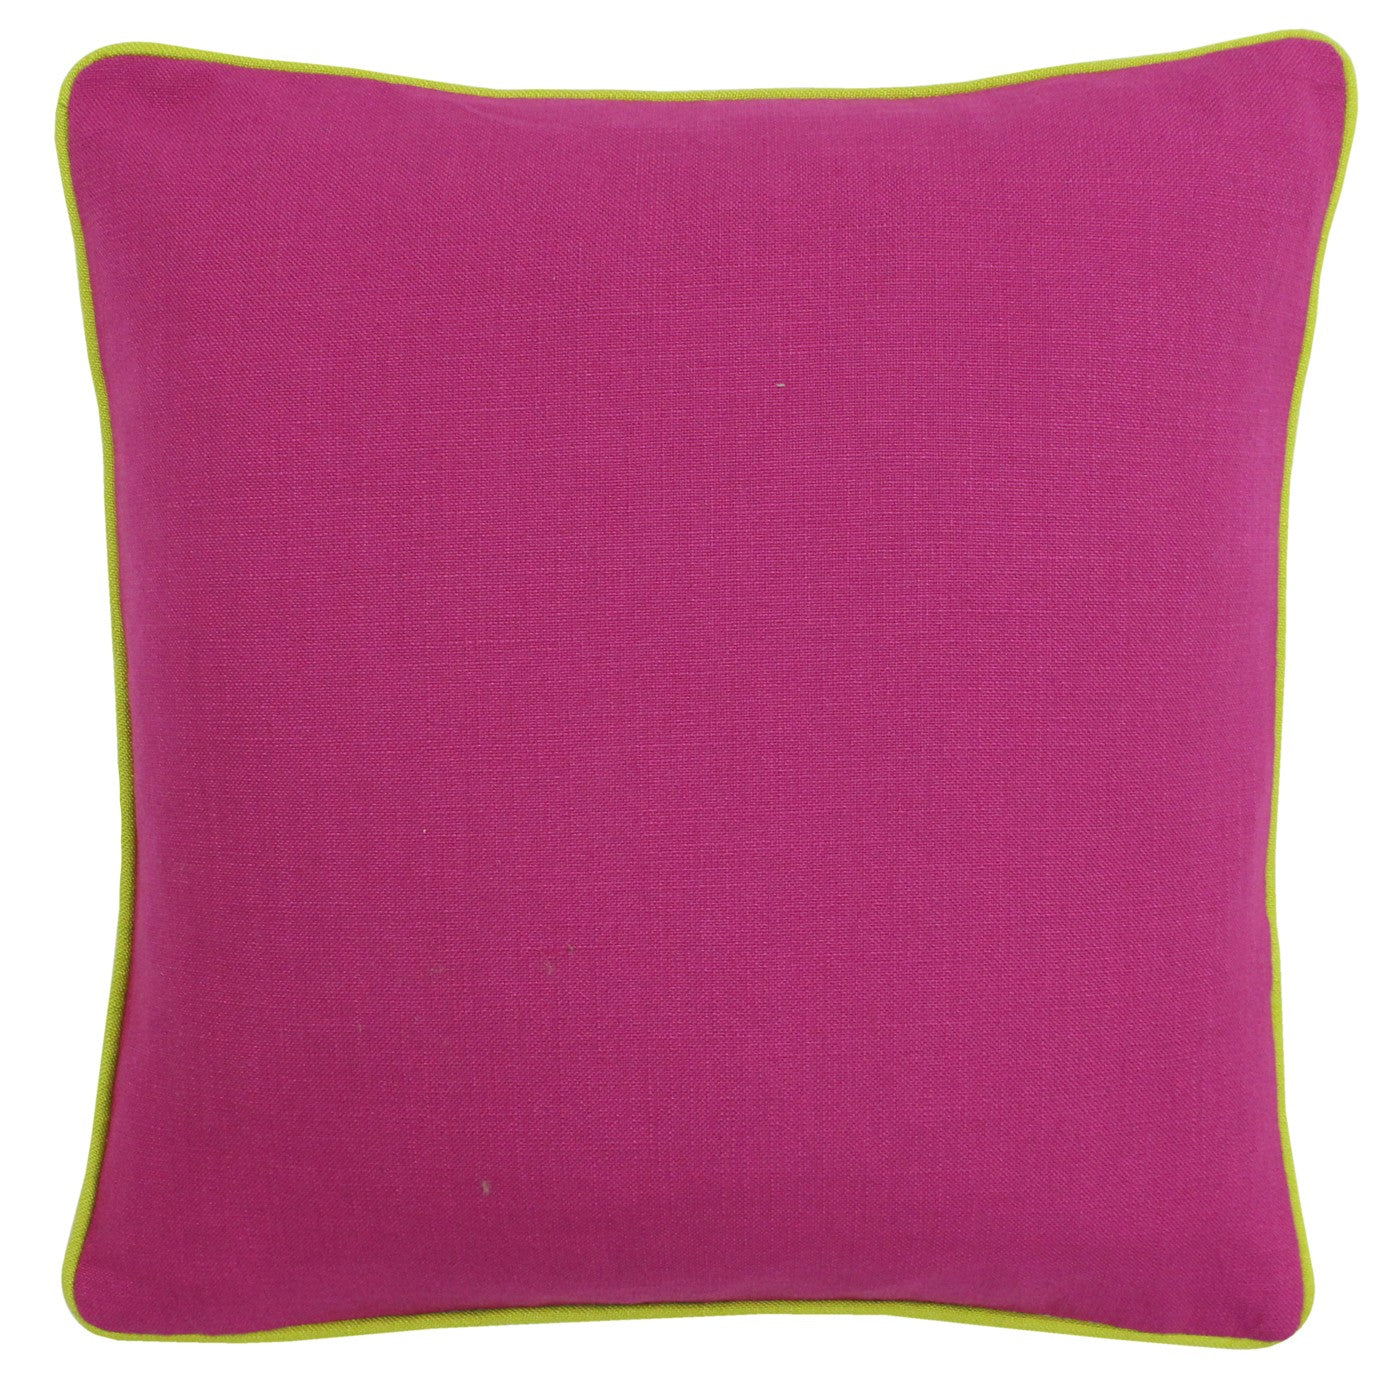 Brand new fuchsia cushion with lime piping